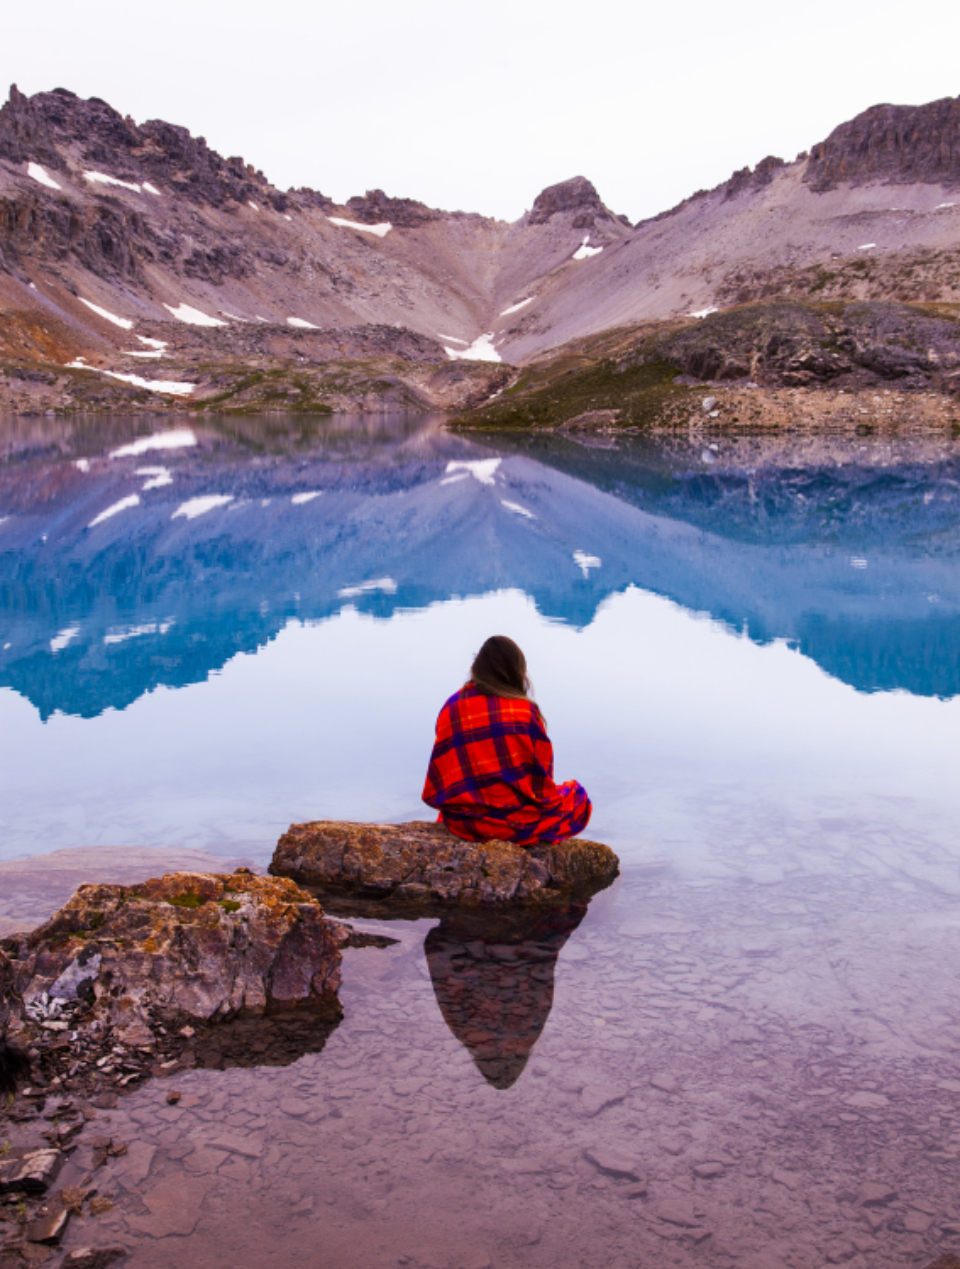 woman blanket lake cold frozen clear water river still rocks sit mountains people travel adventure